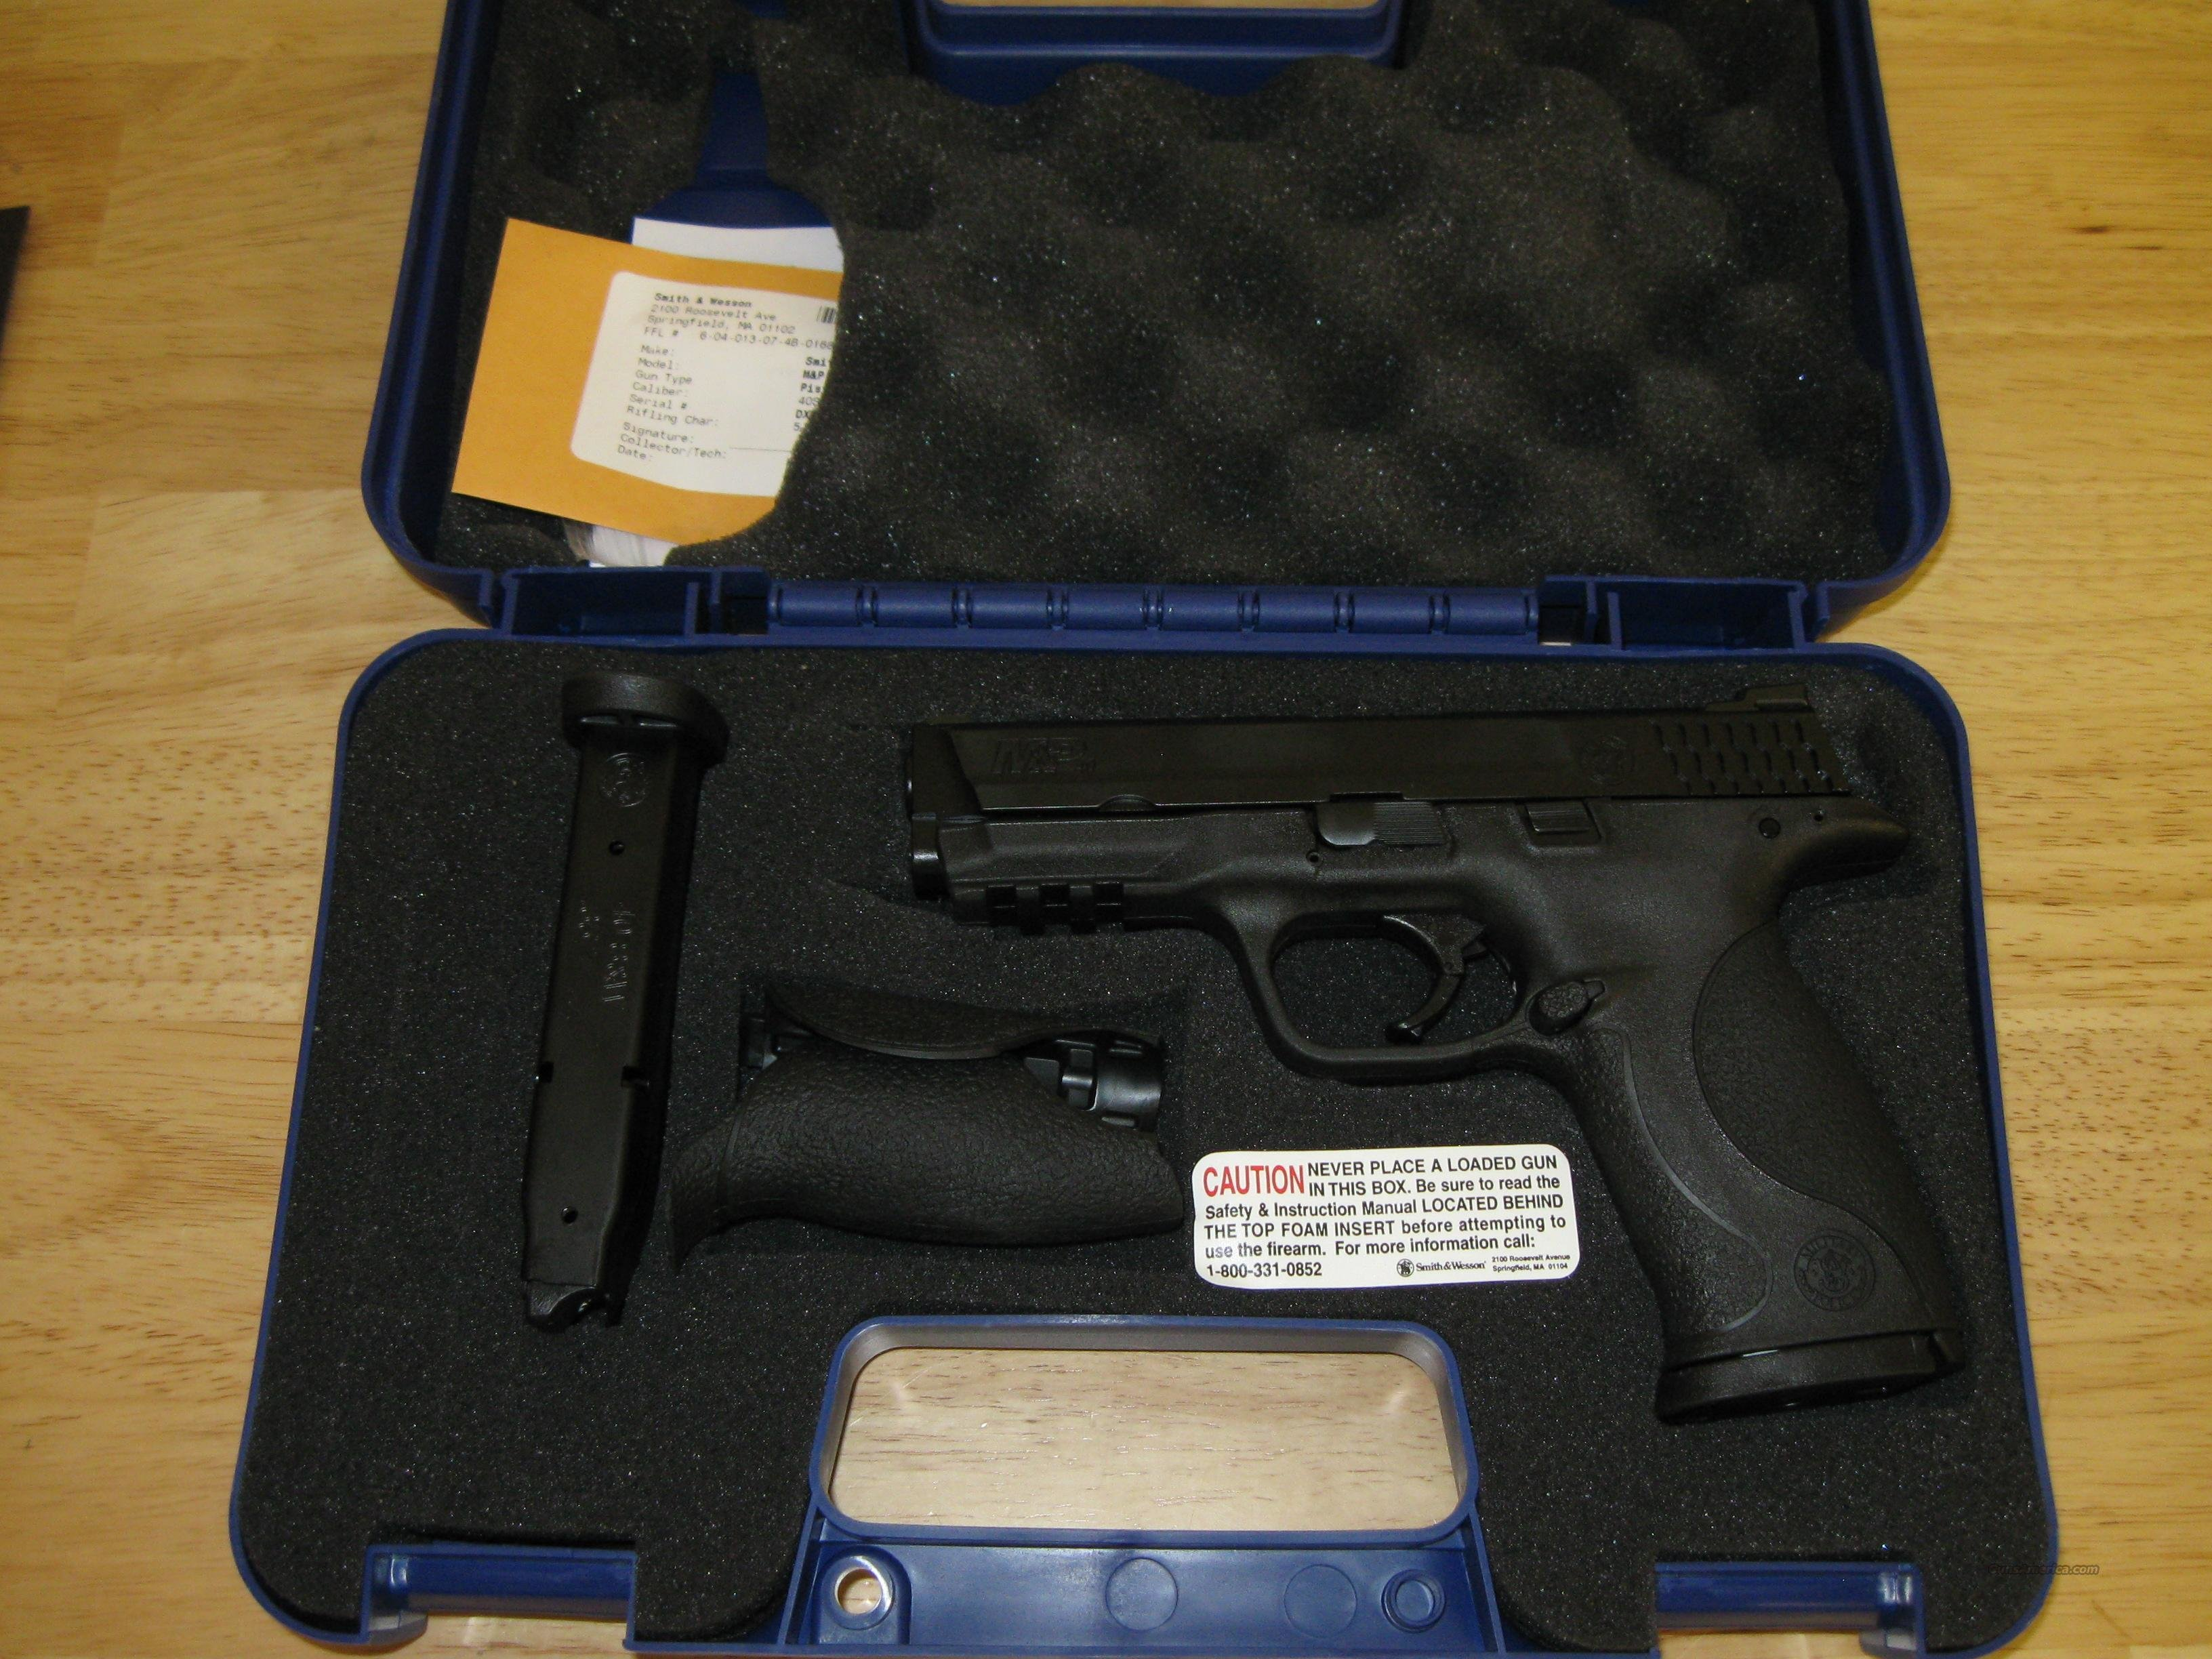 "S&W M&P40 .40S&W, 15+1, 4.25"", FS, (151209) ILLUMINATING SIGHTS  Guns > Pistols > Smith & Wesson Pistols - Autos > Polymer Frame"